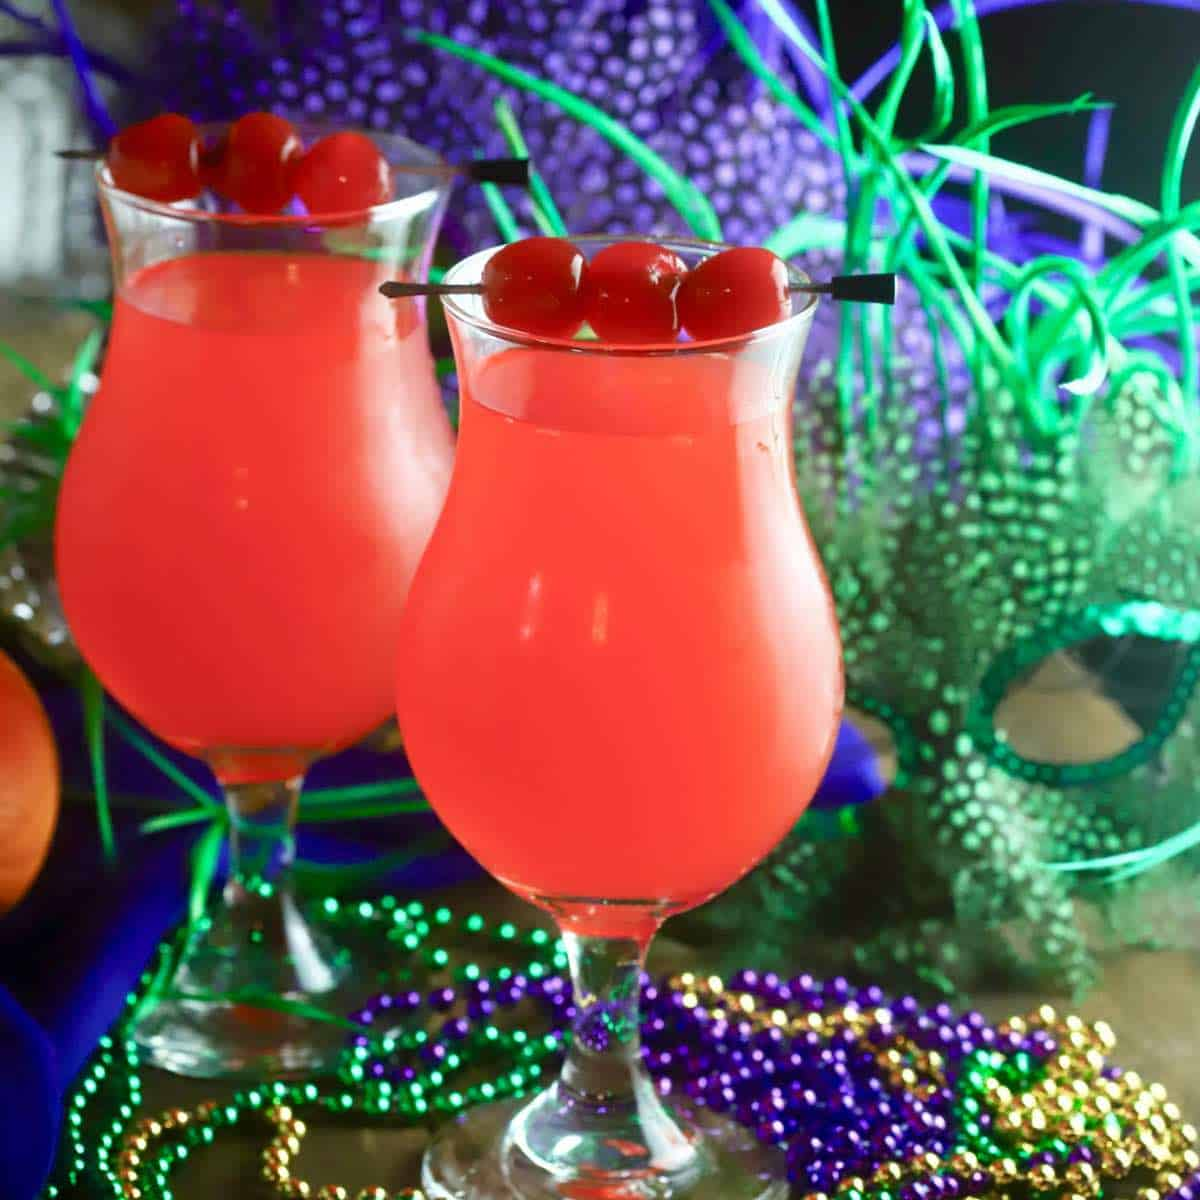 Twoo hurricane cocktails with Mardi Gras beads.